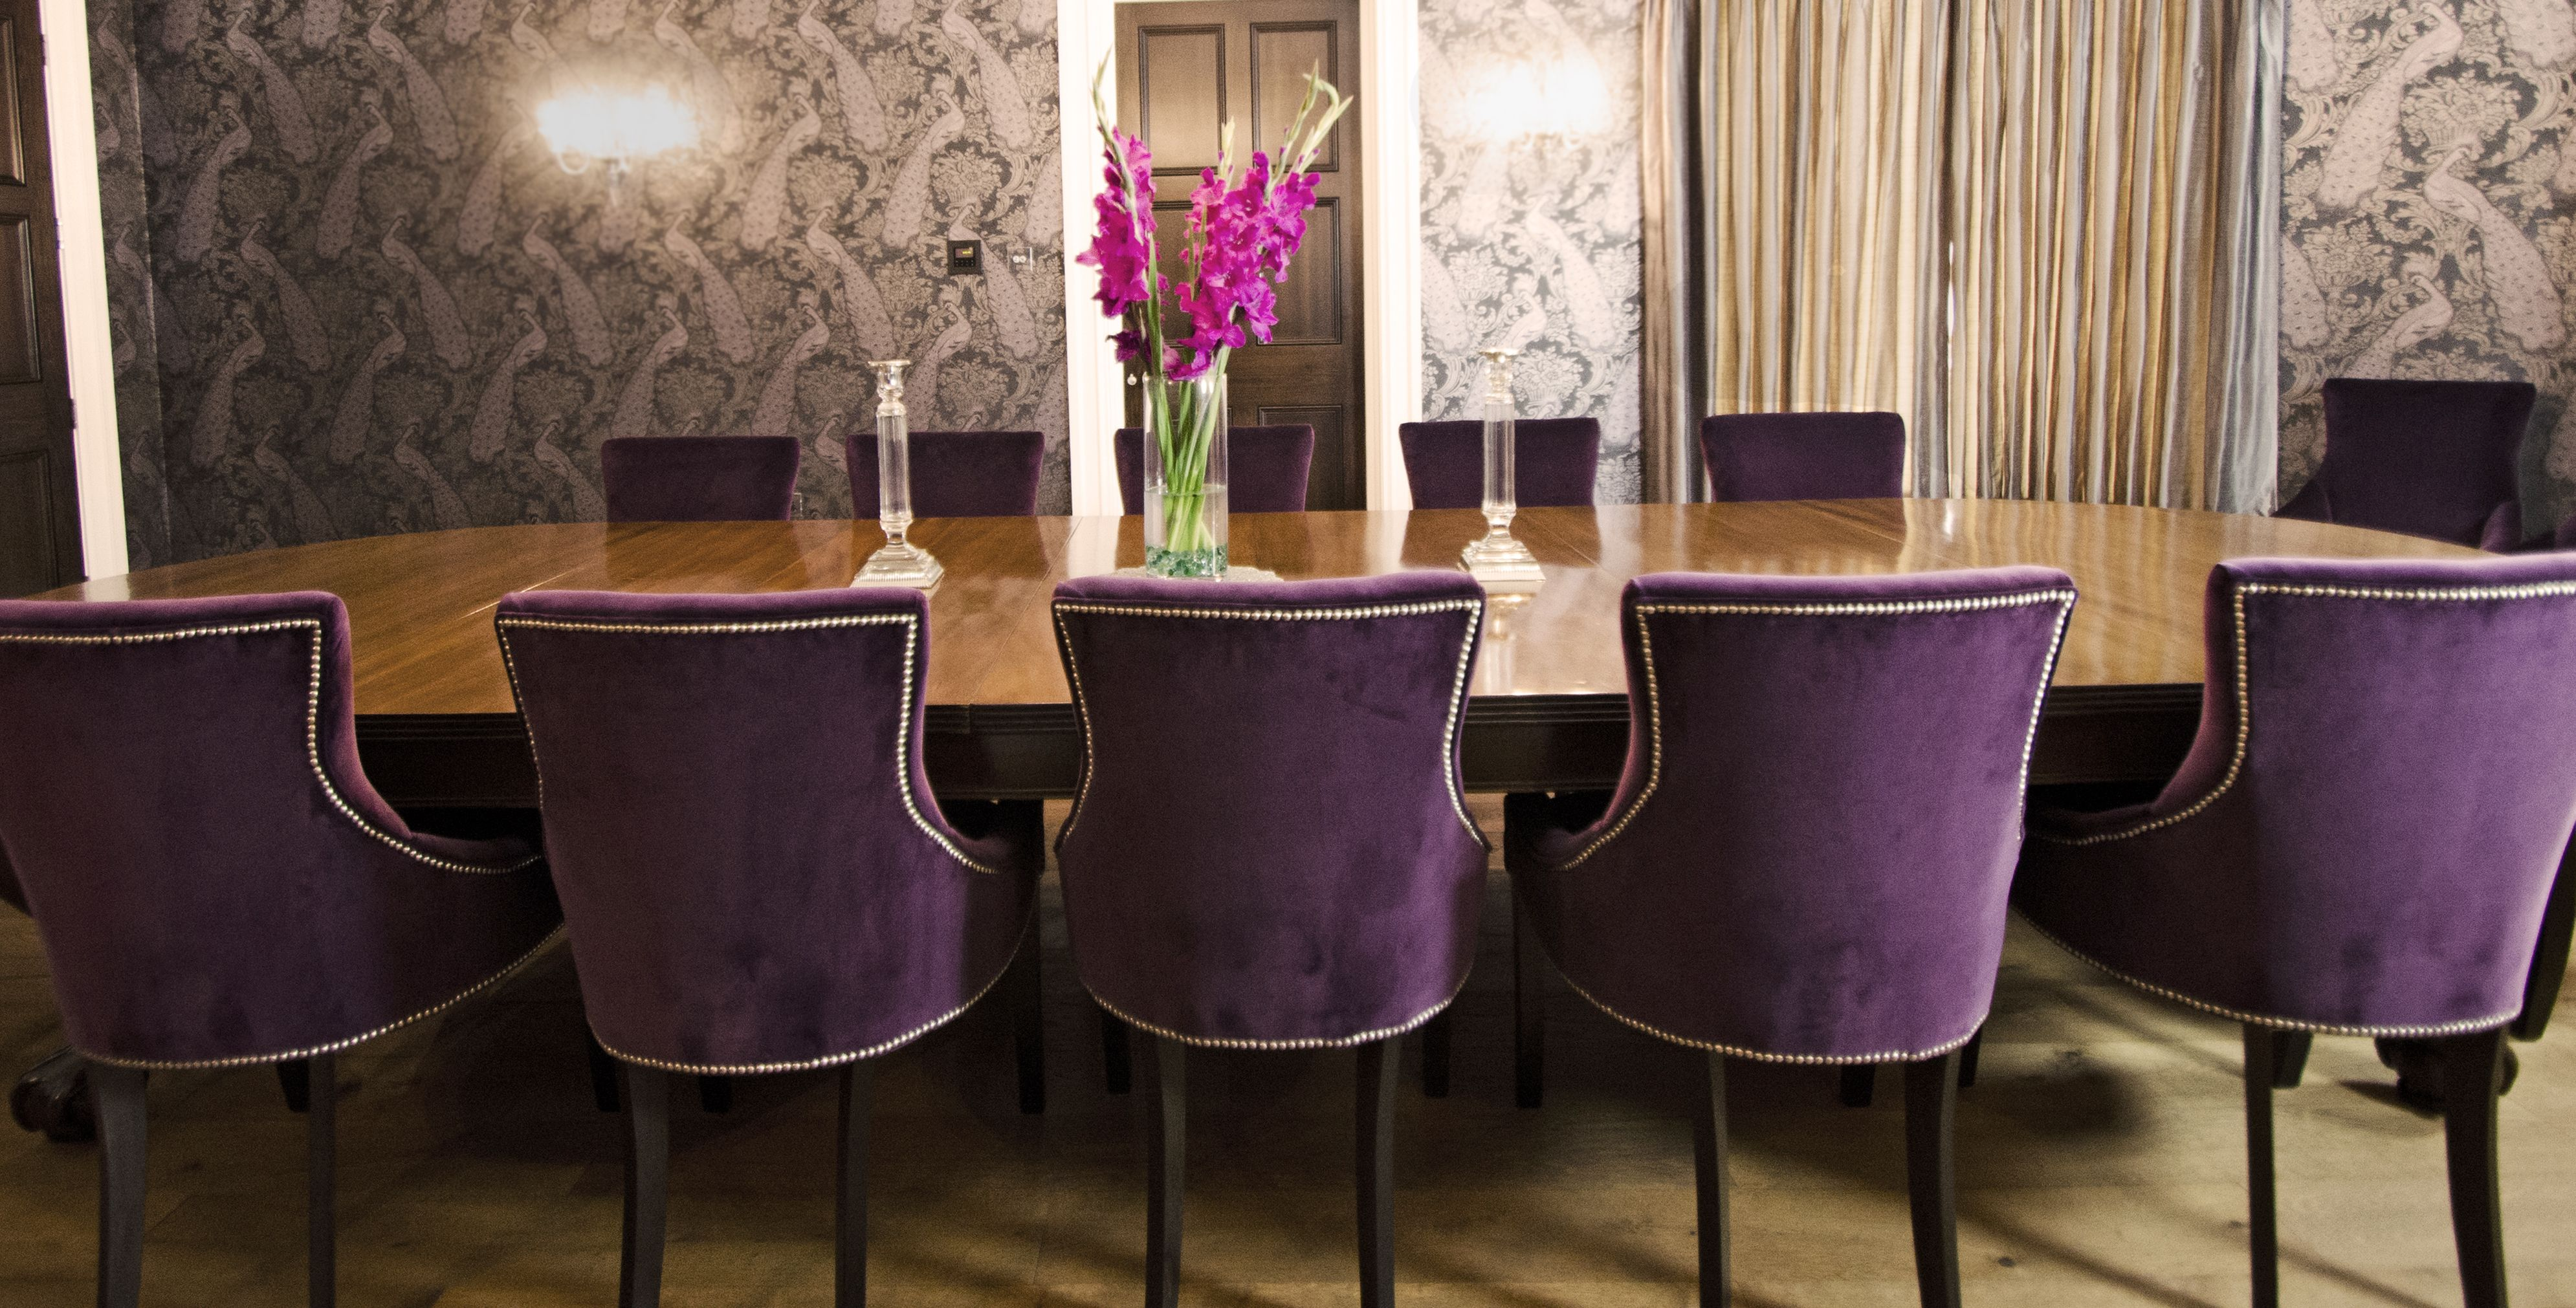 Velvet Purple Dining Room Chairs Www Suescammellinteriors Co Uk